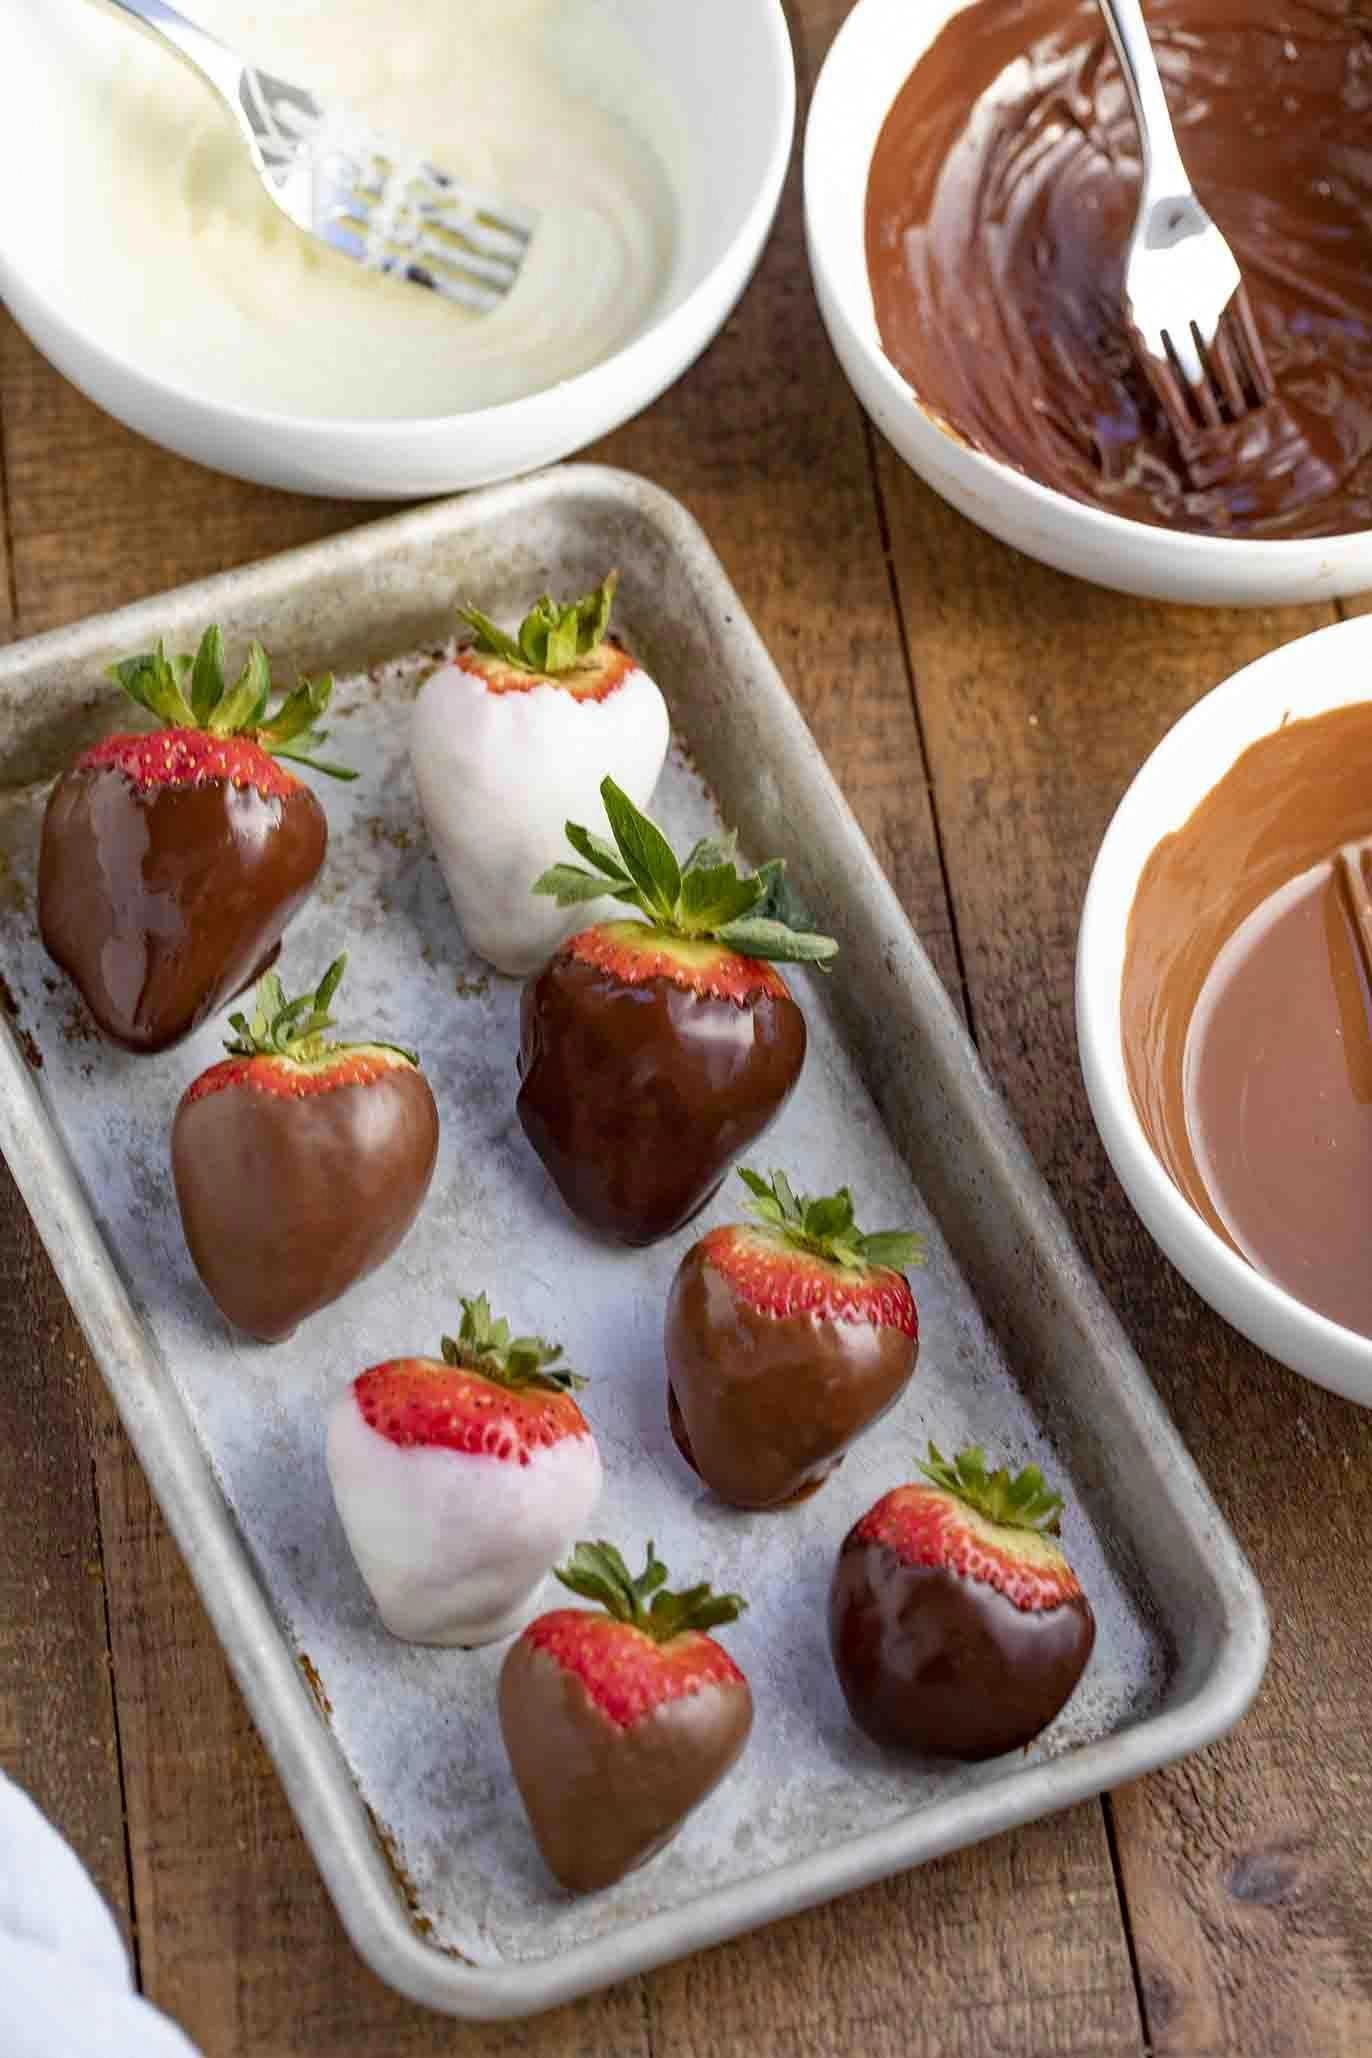 Chocolate Covered Strawberries are a sweet no-bake dessert made with strawberries and melted chocolate, ready in just minutes! #strawberry #strawberries #chocolate #dessert #christmas #valentinesday #newyearseve #mothersday #dinnerthendessert #chocolatecoveredstrawberries